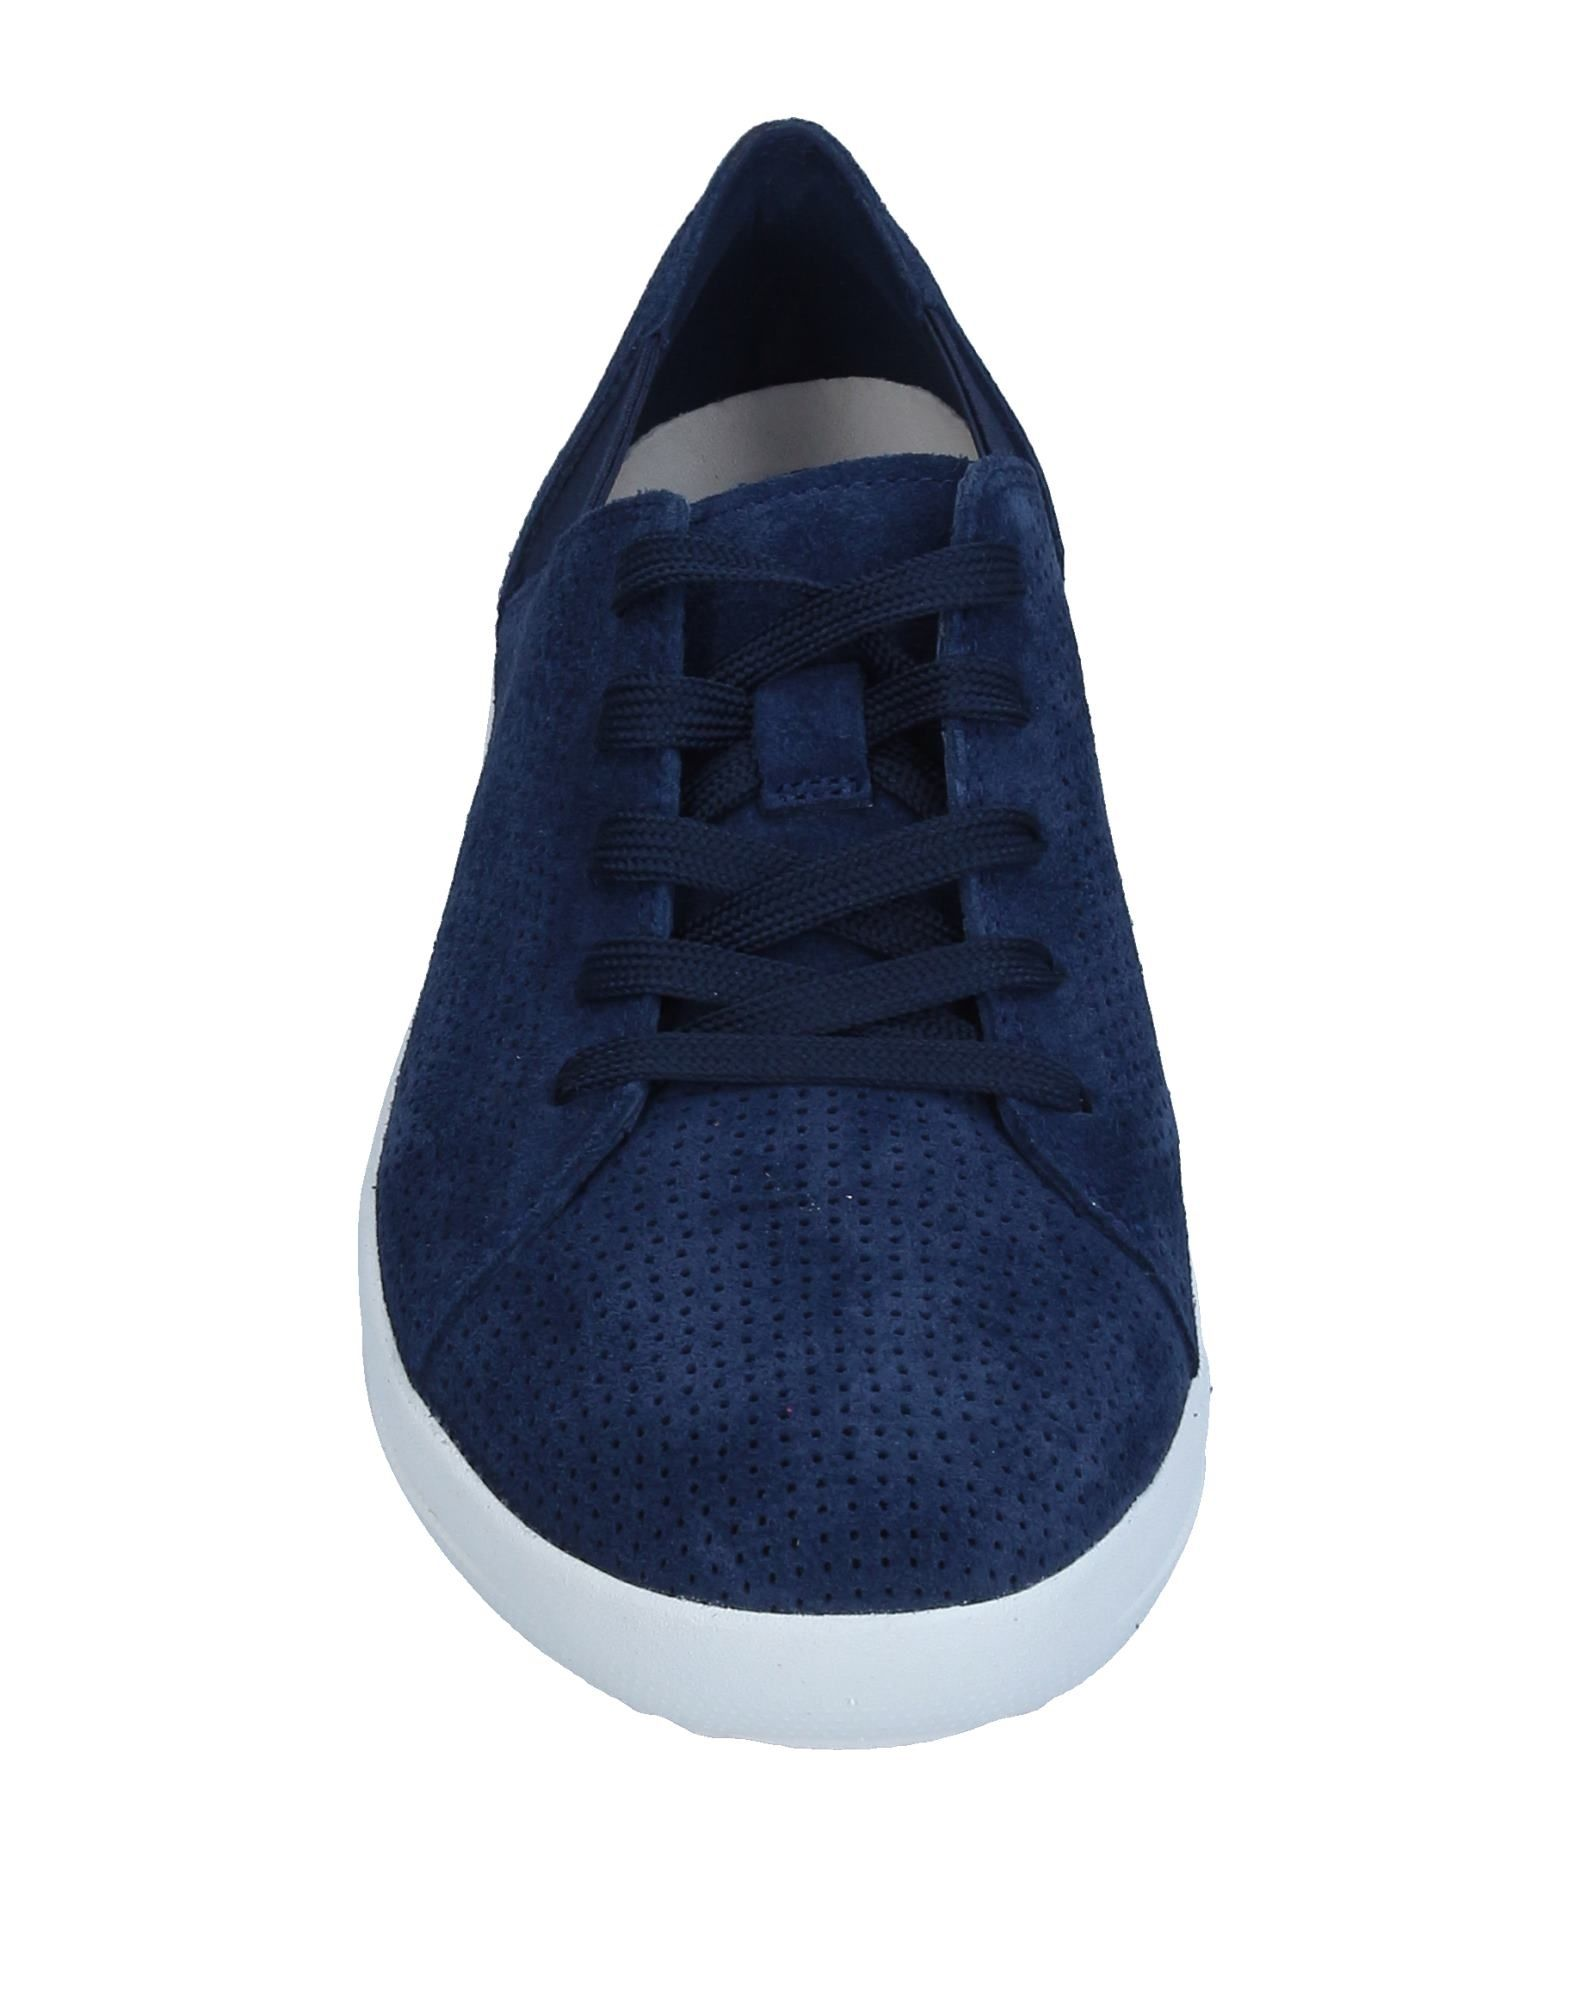 Fitflop Sneakers - Women Fitflop Fitflop Fitflop Sneakers online on  United Kingdom - 11349306PX 921079